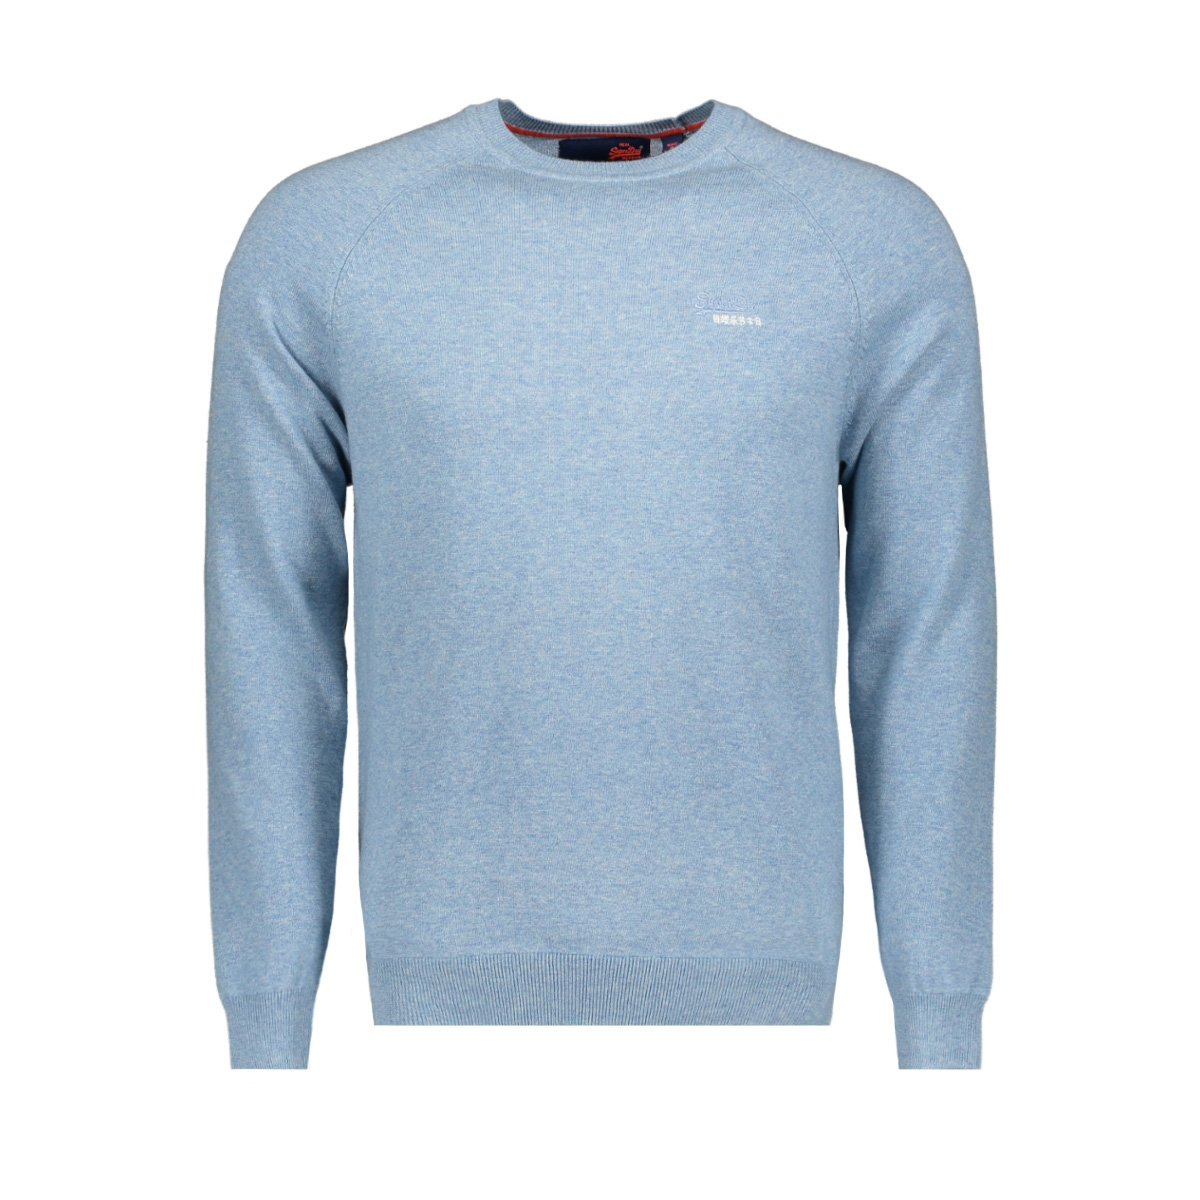 m61101gt cotton crew superdry trui parched blue grit